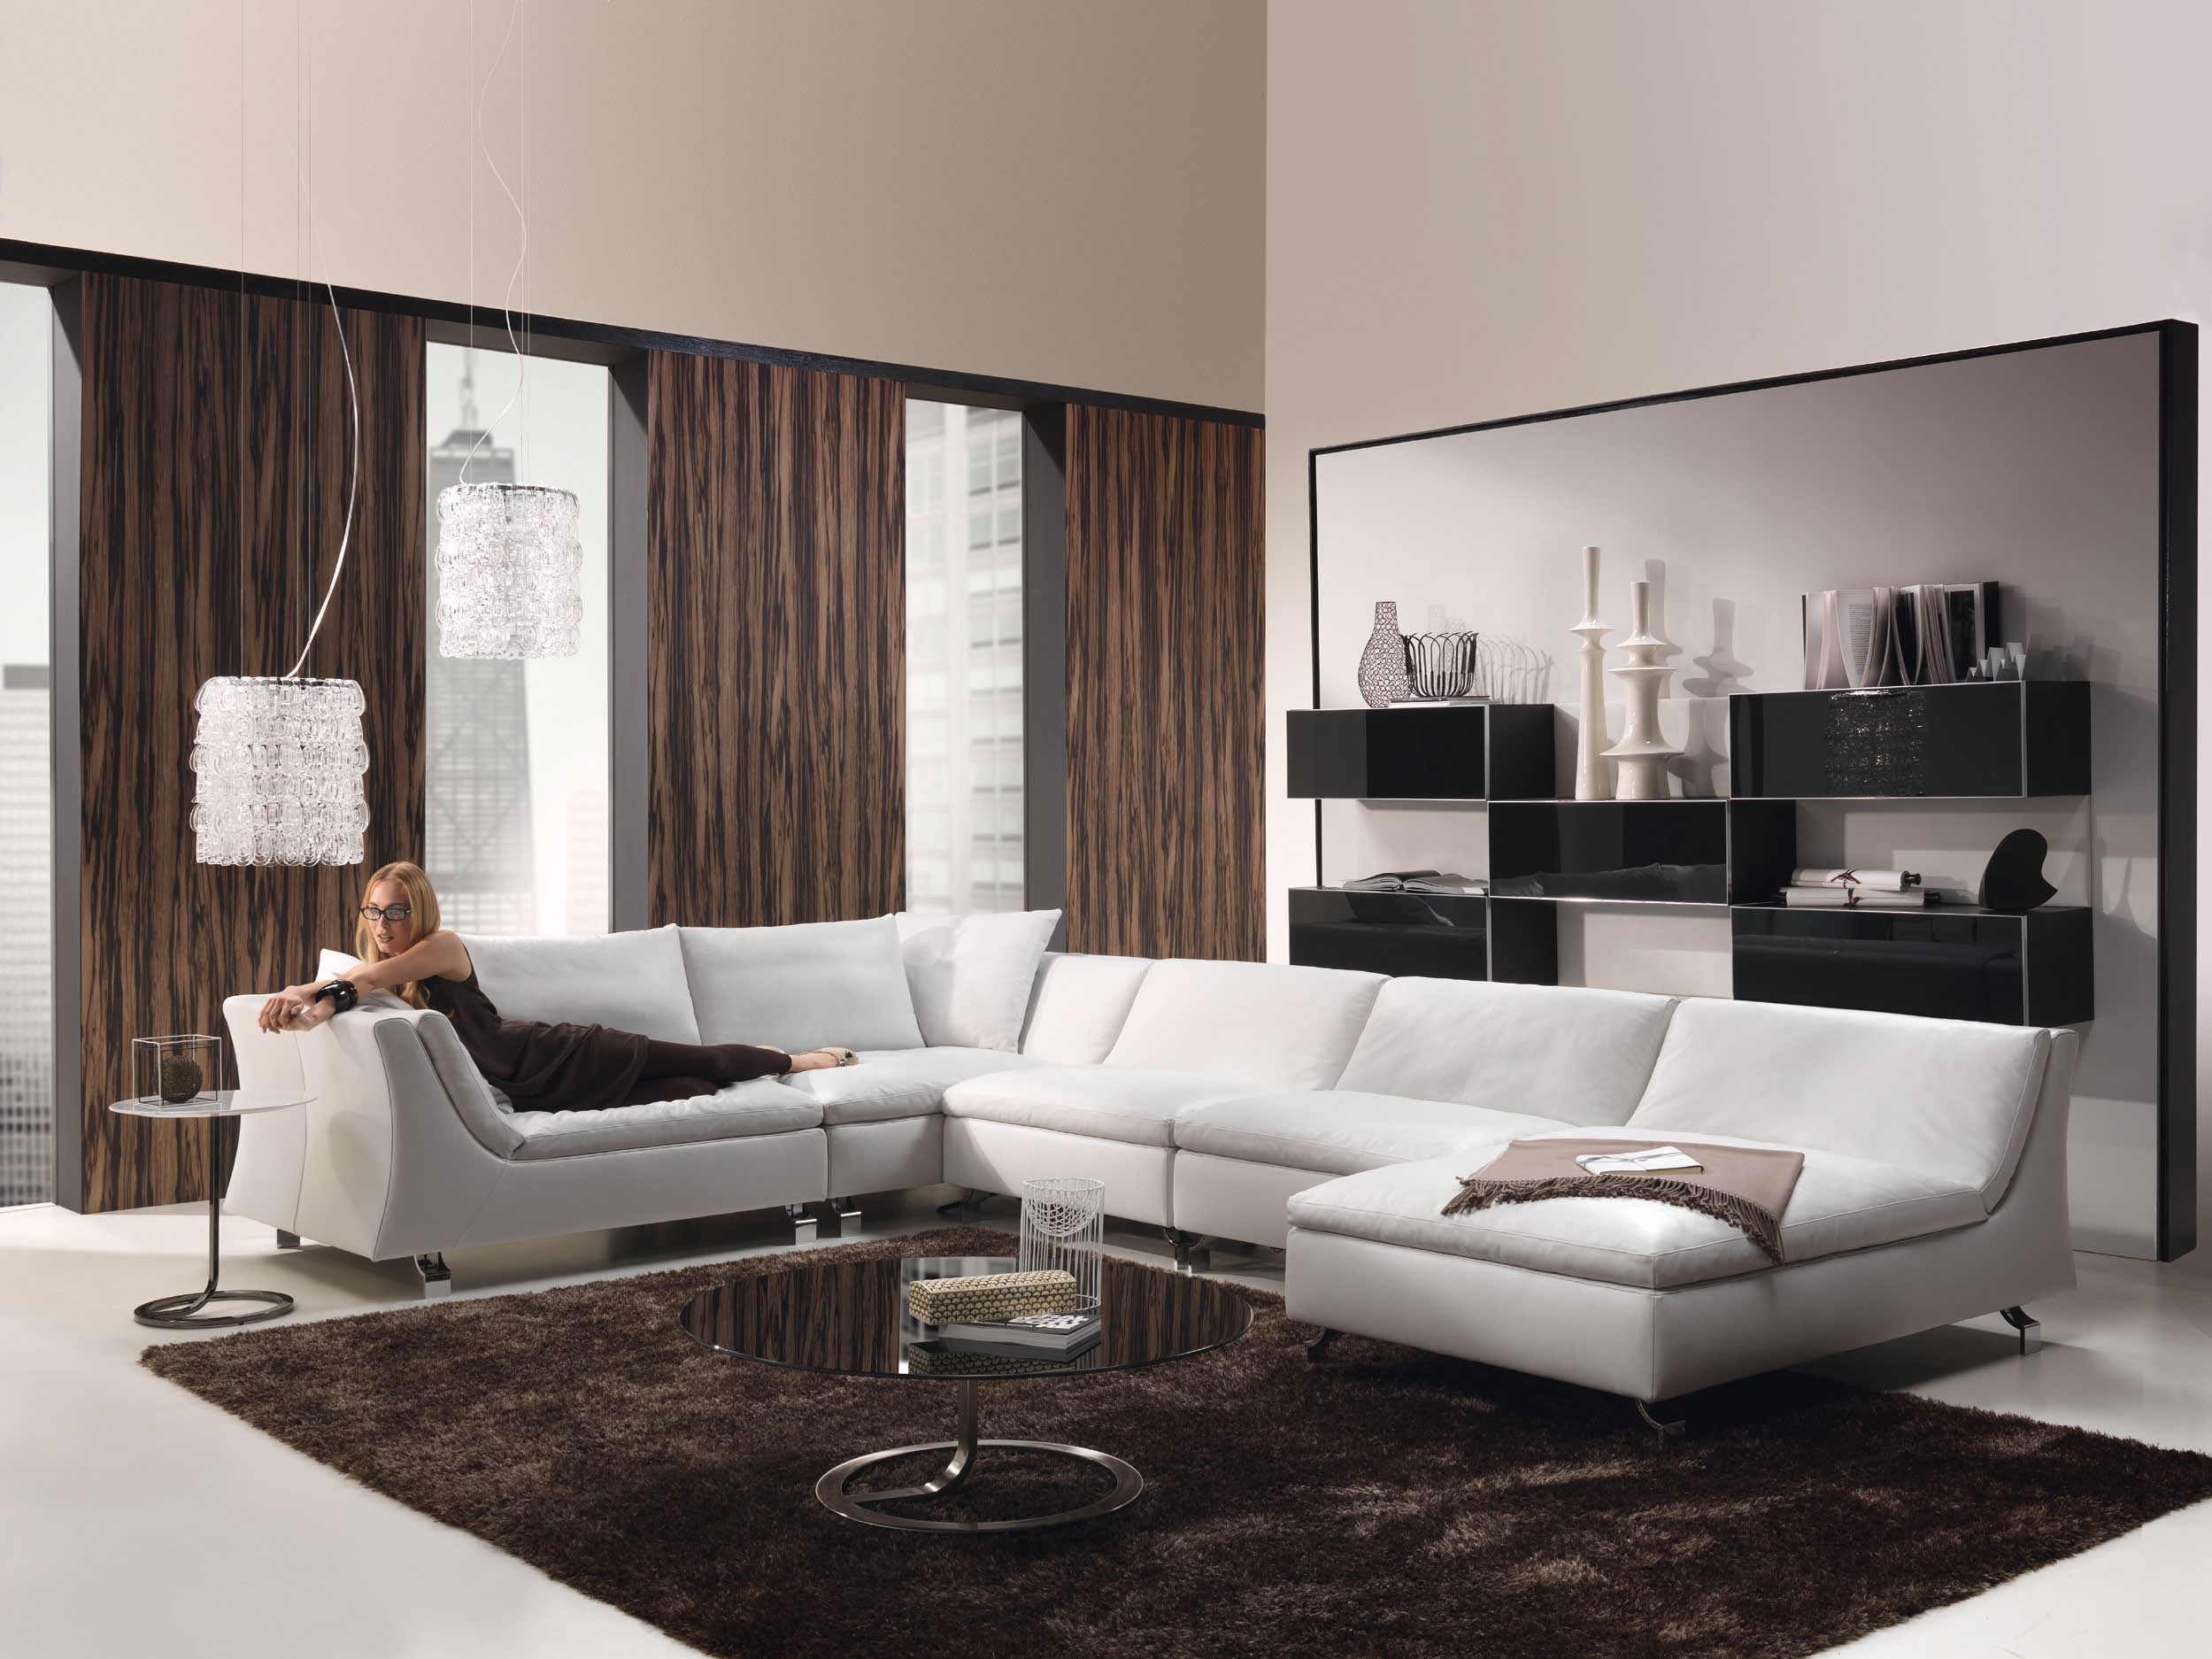 bright-brown-curtains-for-living-room-big-white-sofa-round-glass-table-black-fur-carpet-storage-board-for-accent-standing-lamp-modern